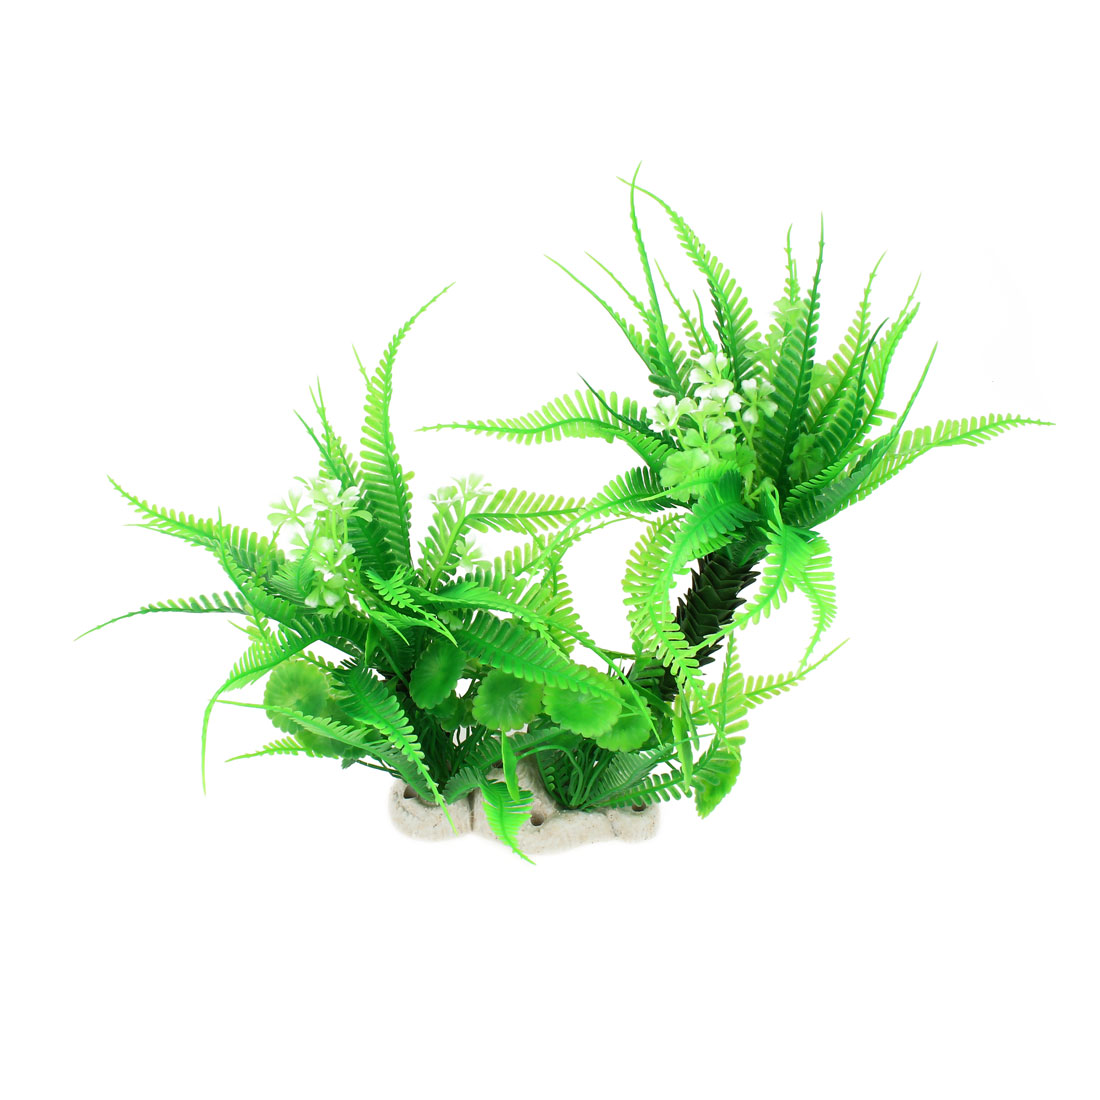 "Fish Tank Decoration 11.8"" Height Coconut Tree Underwater Aquarium Plant Grass Green"